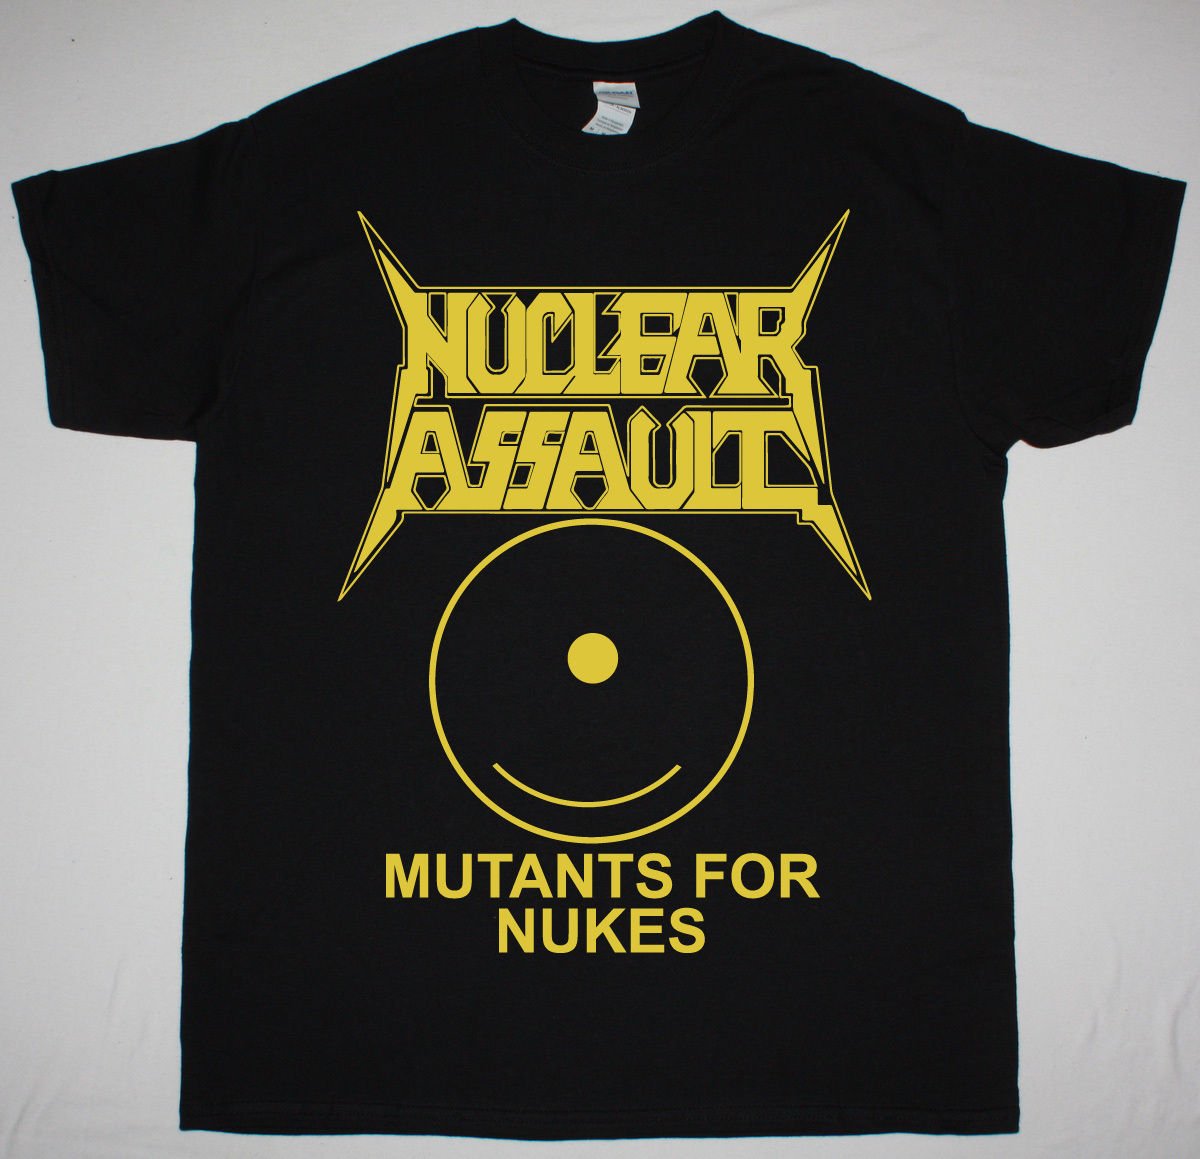 NUCLEAR ASSAULT MUTANTS FOR NUKES BLACK T SHIRT THRASH METAL CROSSOVER S.O.D. ...